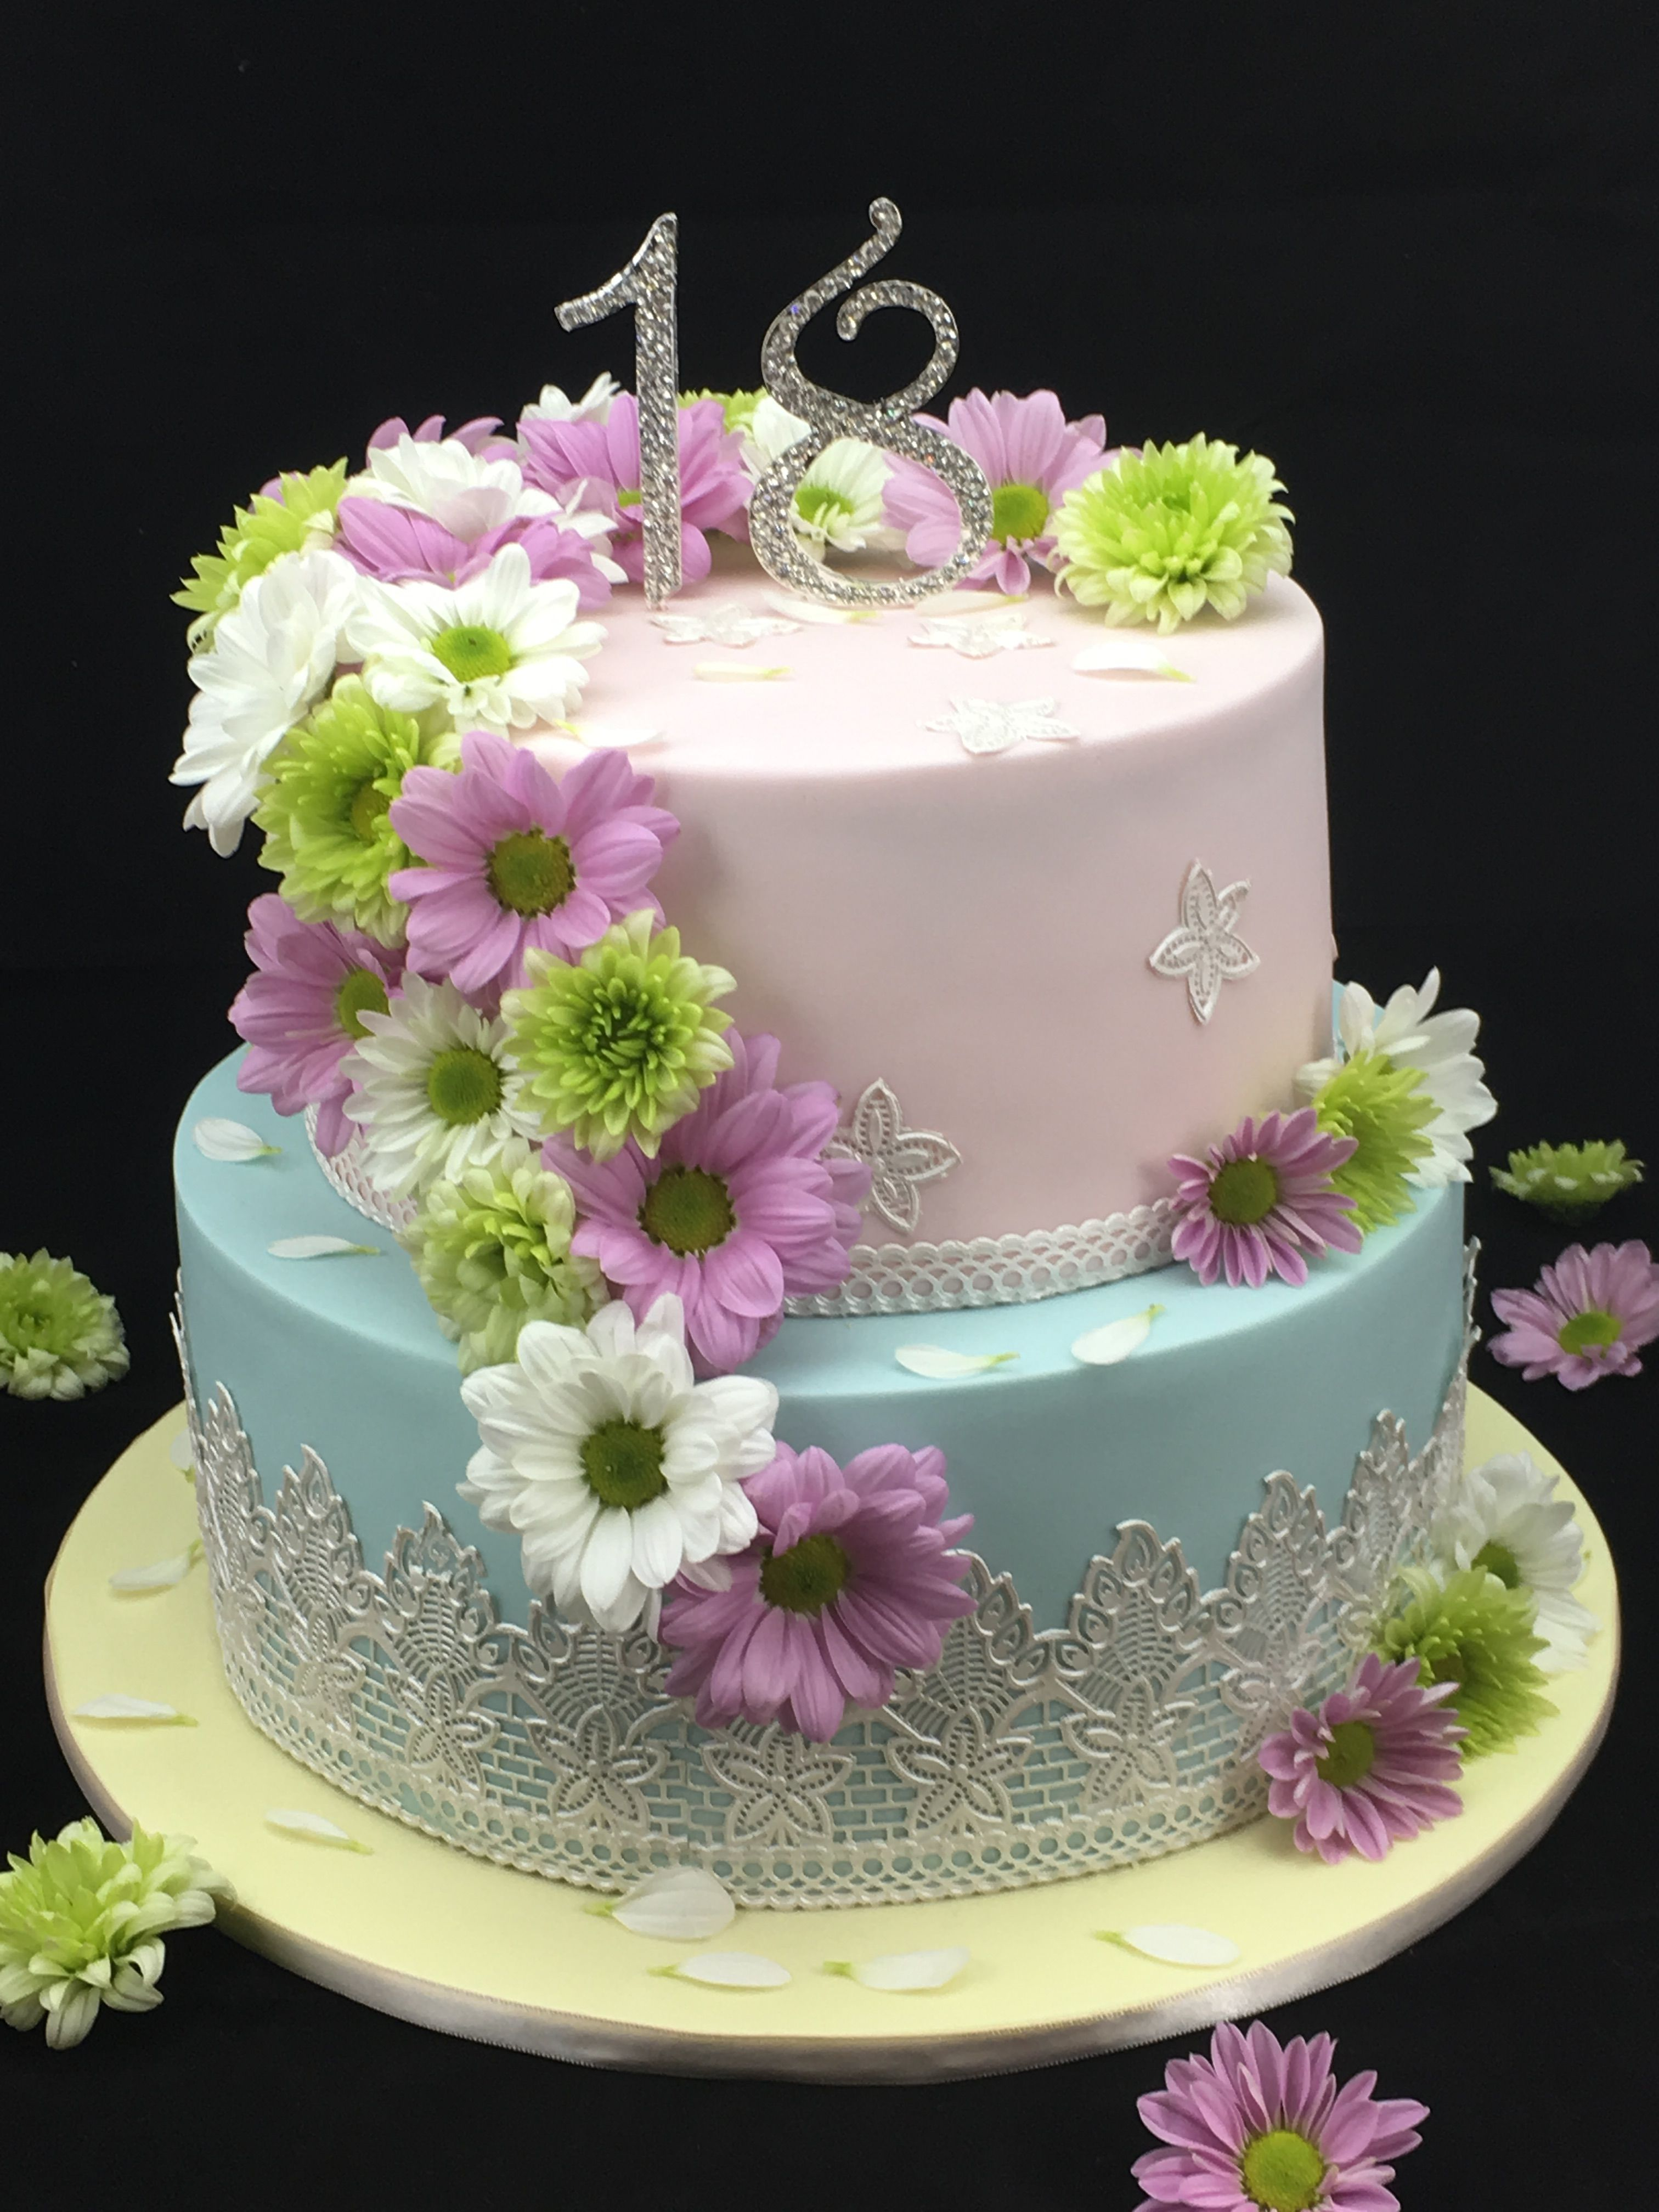 Two Tier Pale Pink And Blue 18th Birthday Cake With Edible Lace And